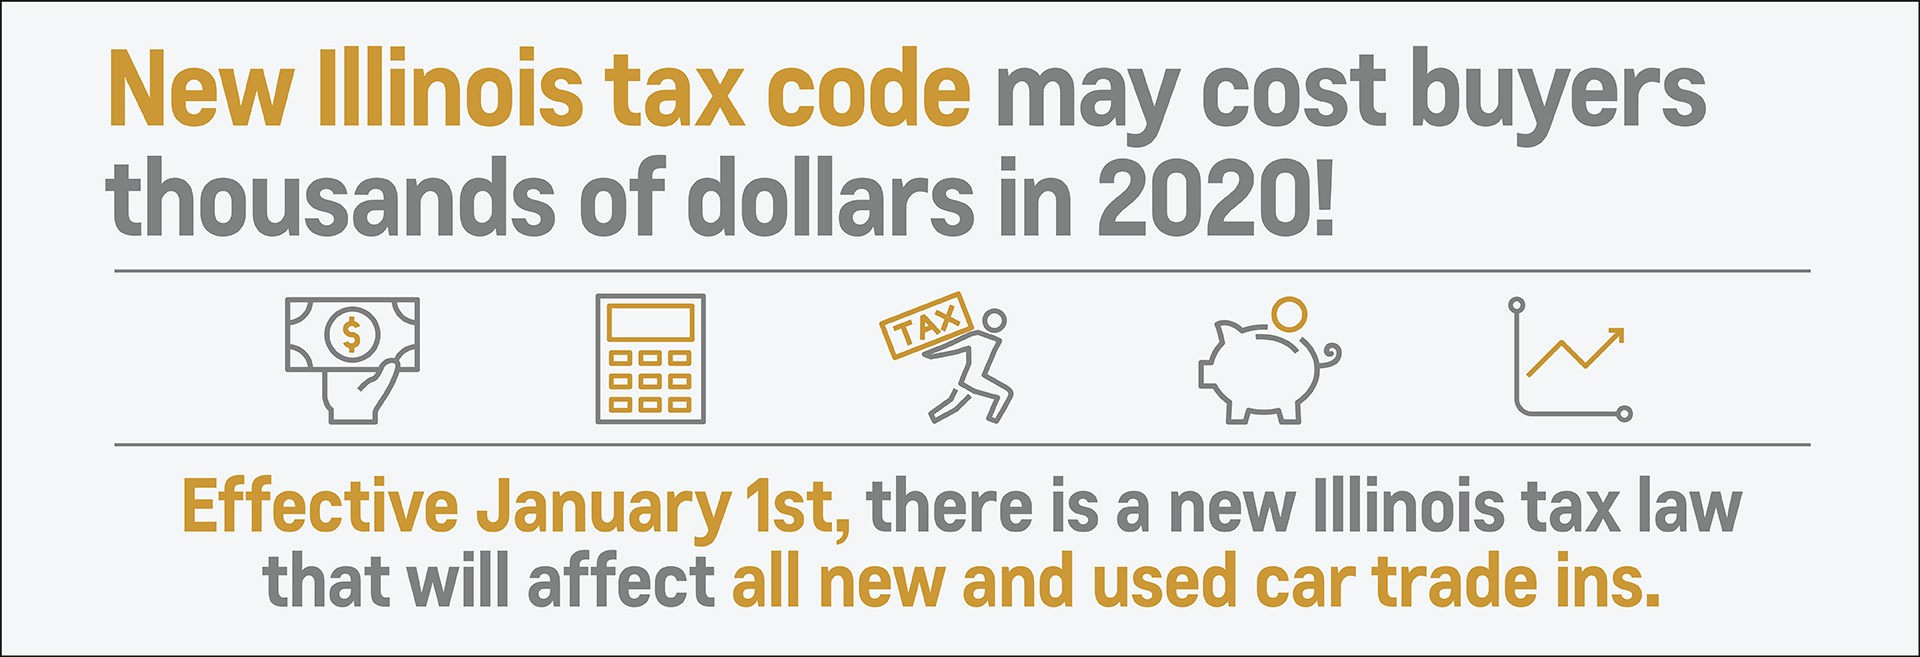 New Illinois tax code may cost buyers thousands of dollars in 2020 - Yellow